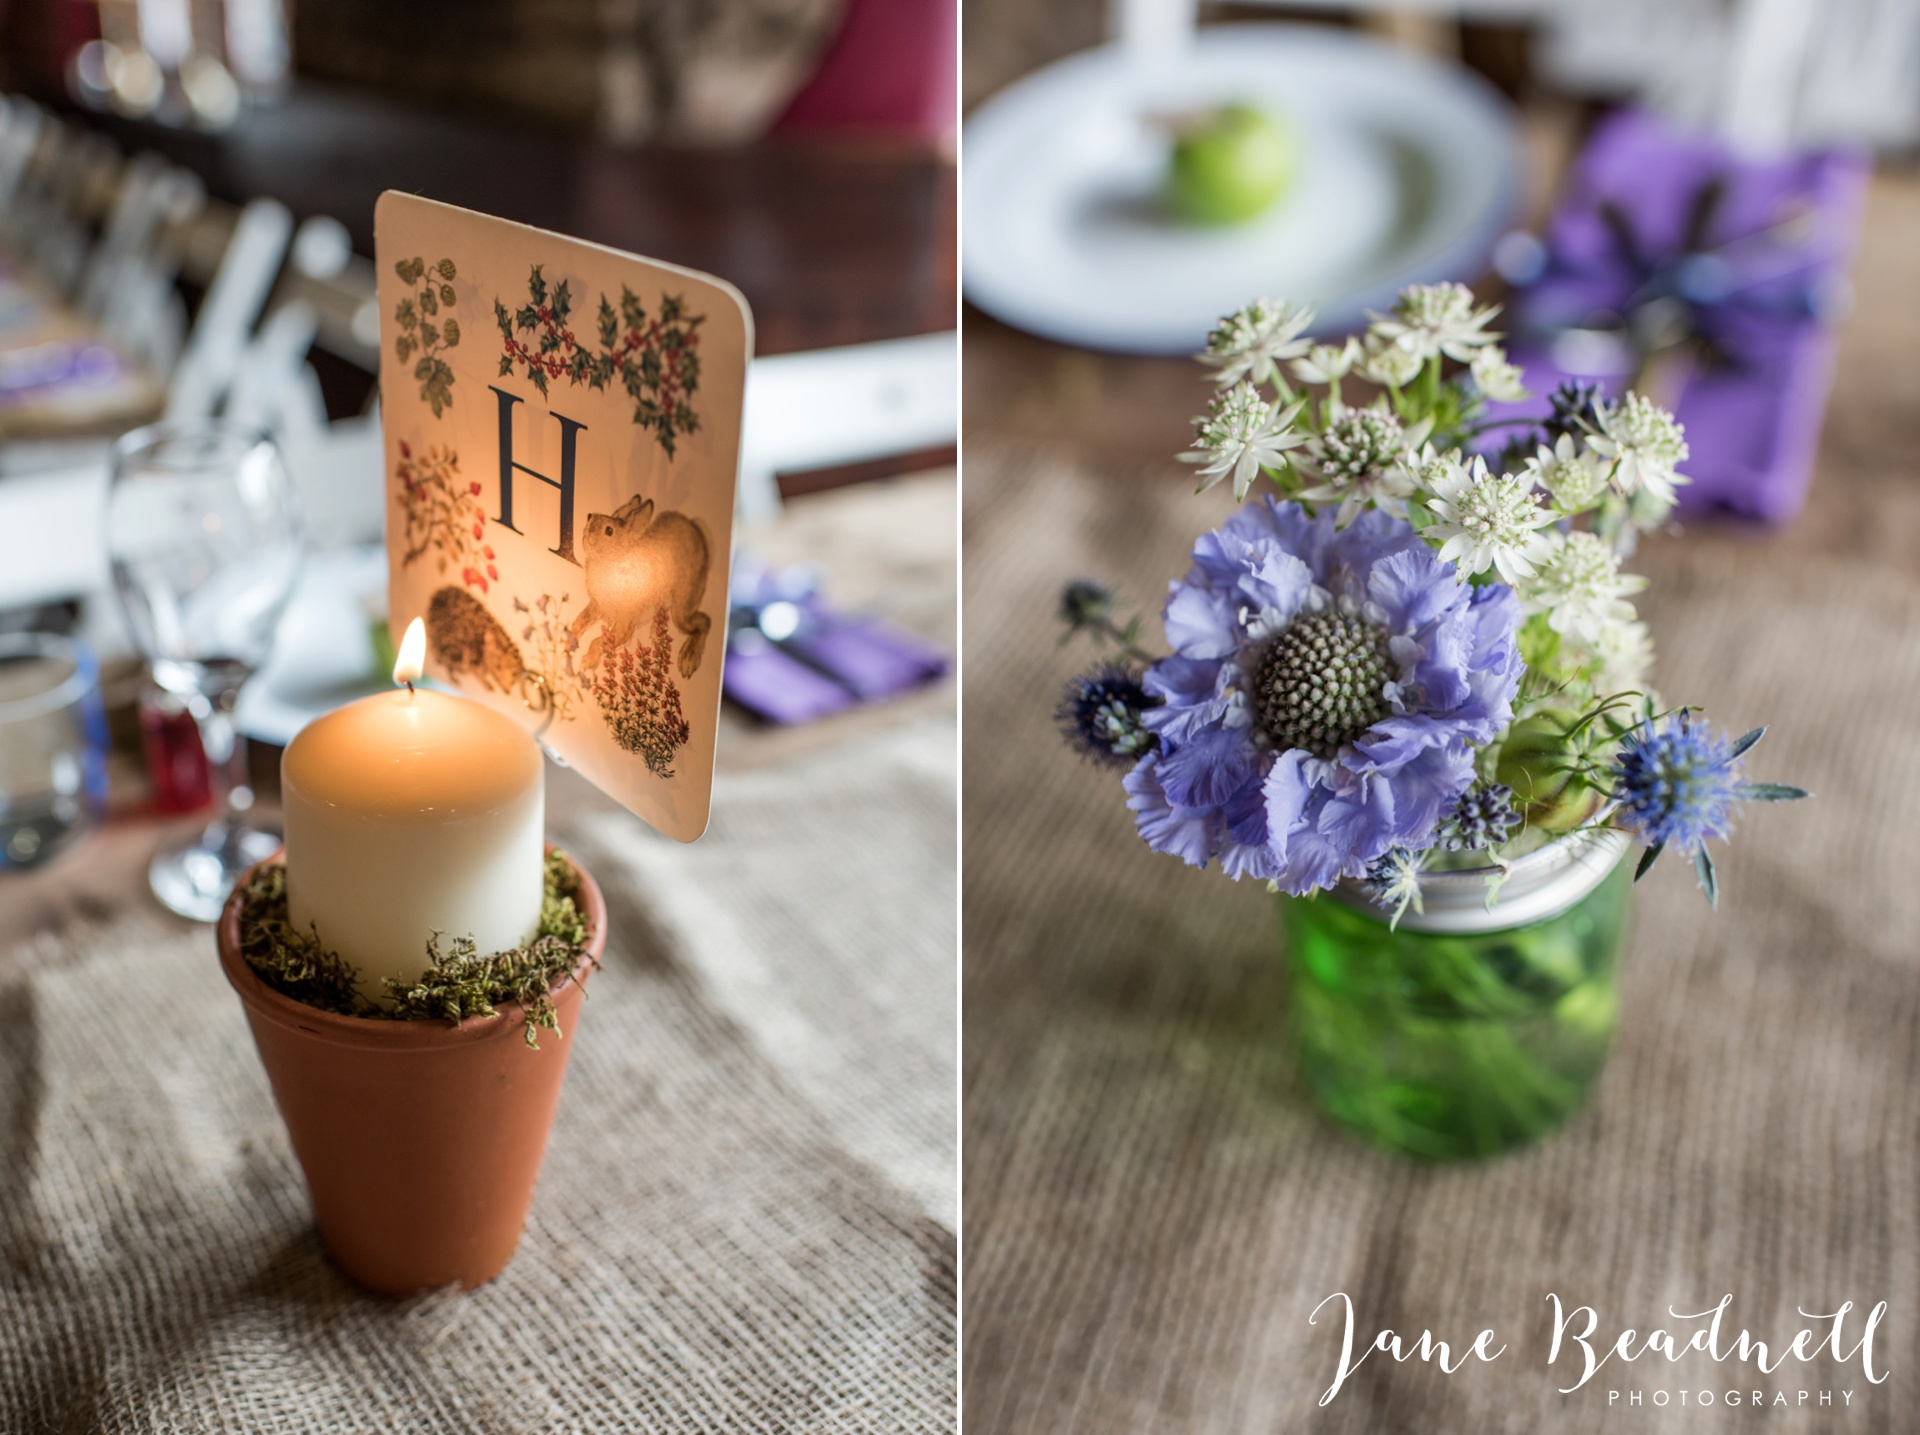 Jane Beadnell fine art wedding photographer Lake Ullswater Lake District_0057